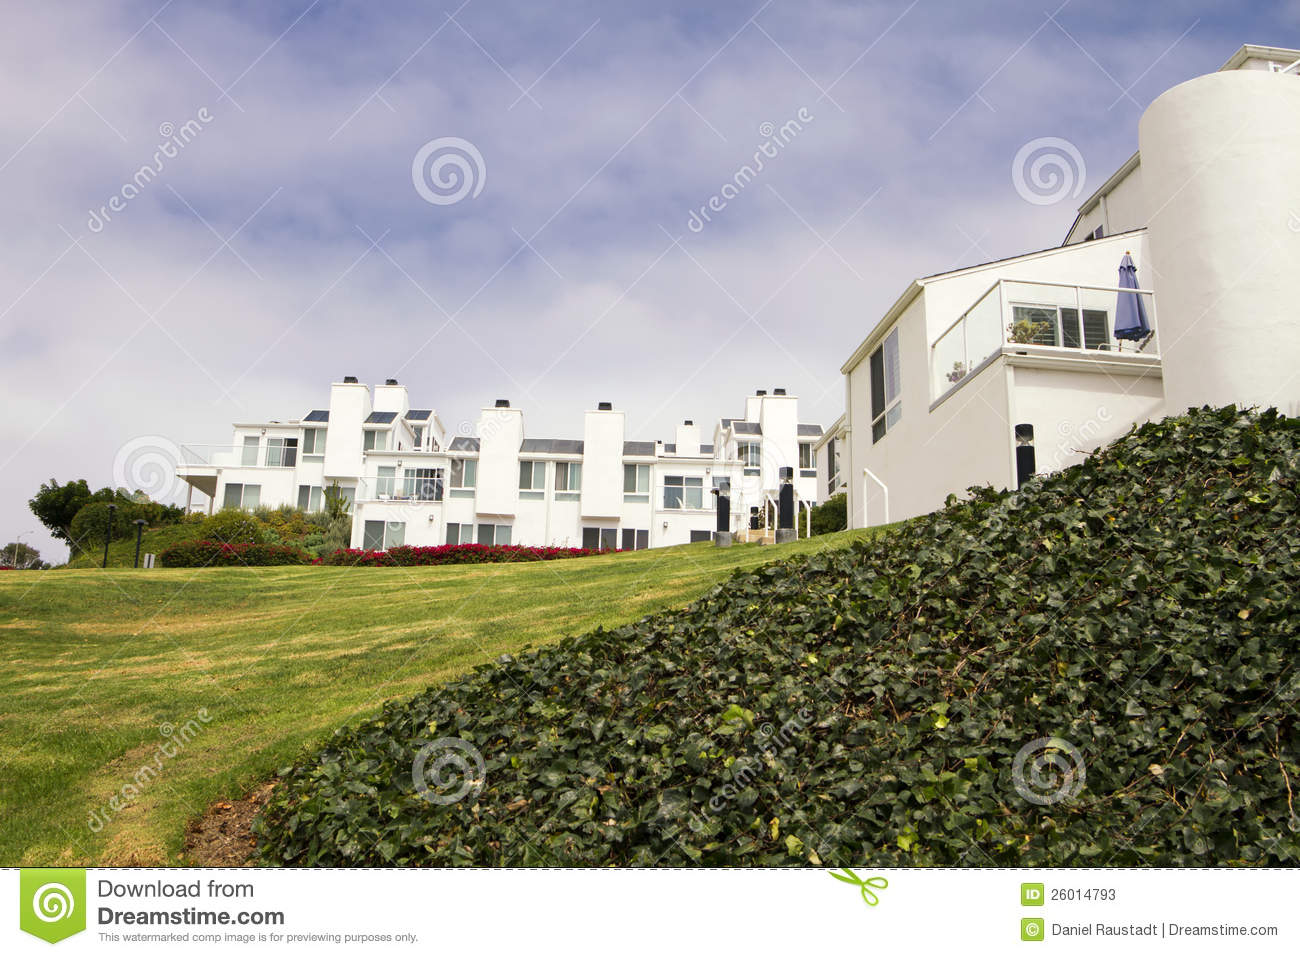 Camere bianche moderne su una collina in california for Case bianche moderne